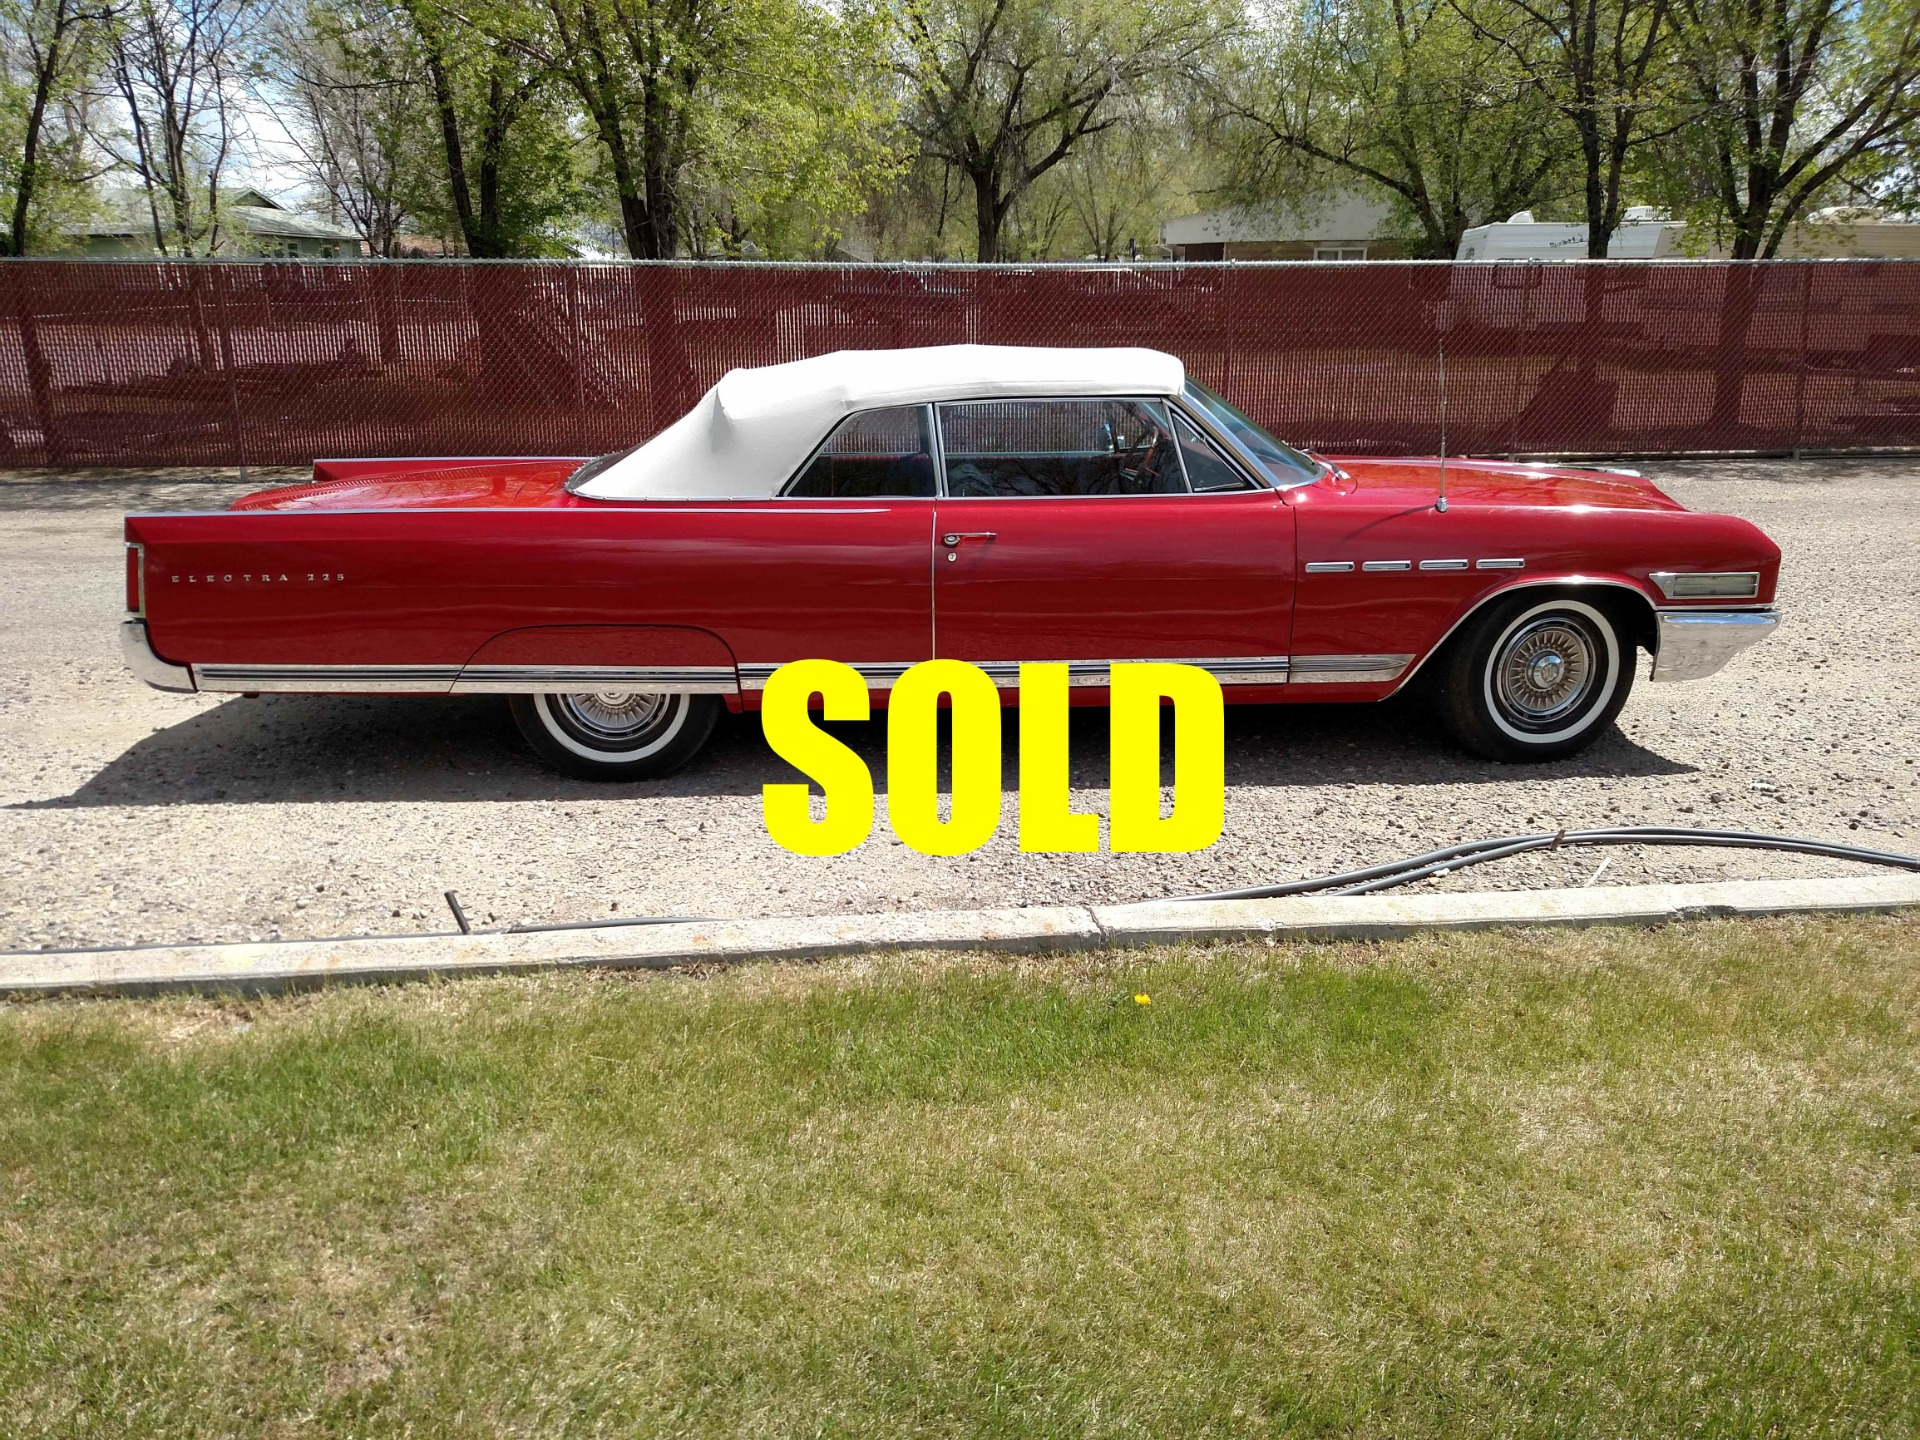 Used 1964 Buick Electra 225 Convertible 152 , For Sale $29500, Call Us: (704) 996-3735